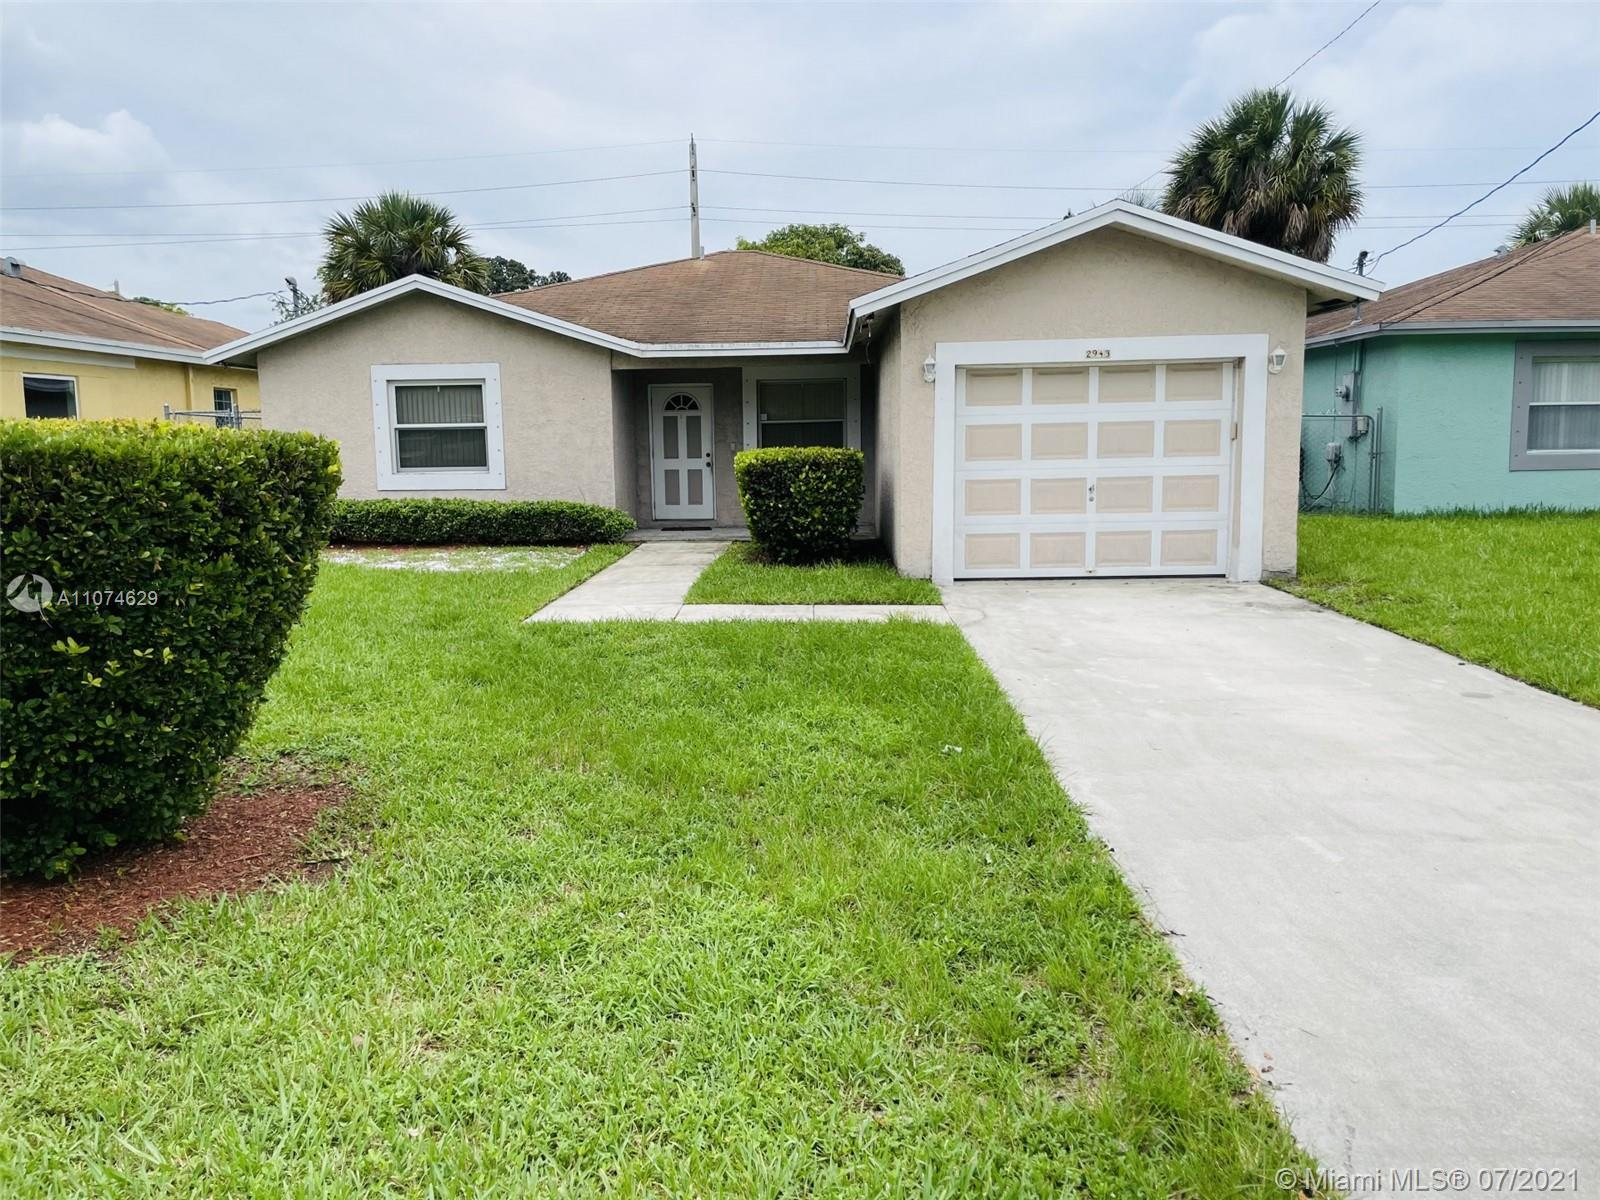 This cozy single-family home, includes 3 bedrooms, 2 full bathrooms and central air conditioning. It